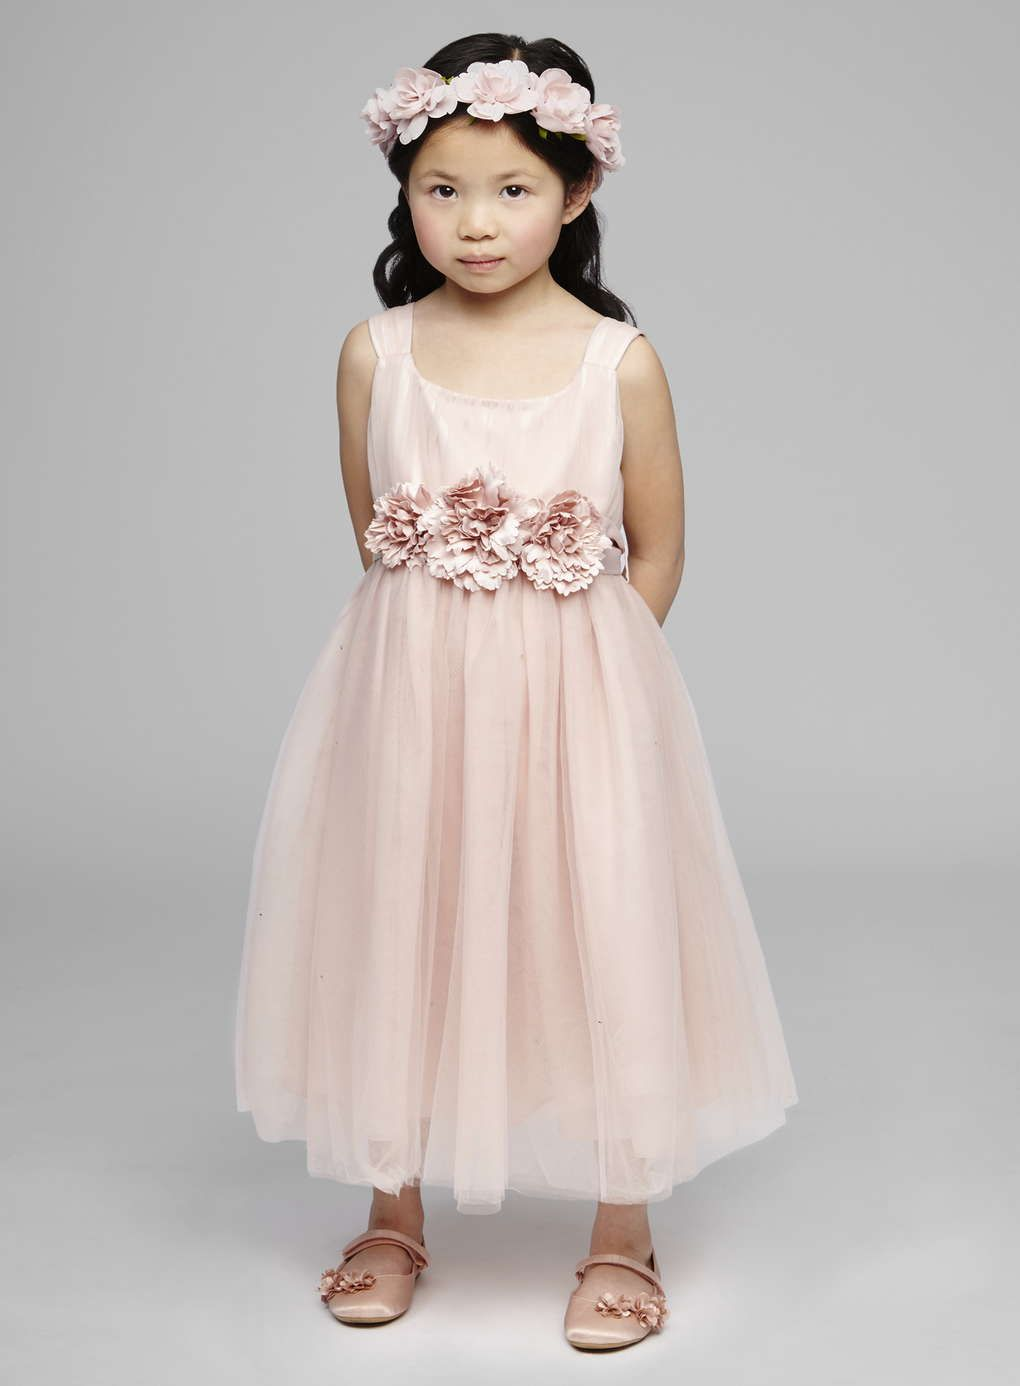 Layla blush flower girl corsage dress bhs dresses pinterest layla blush flower girl corsage dress bhs ombrellifo Gallery